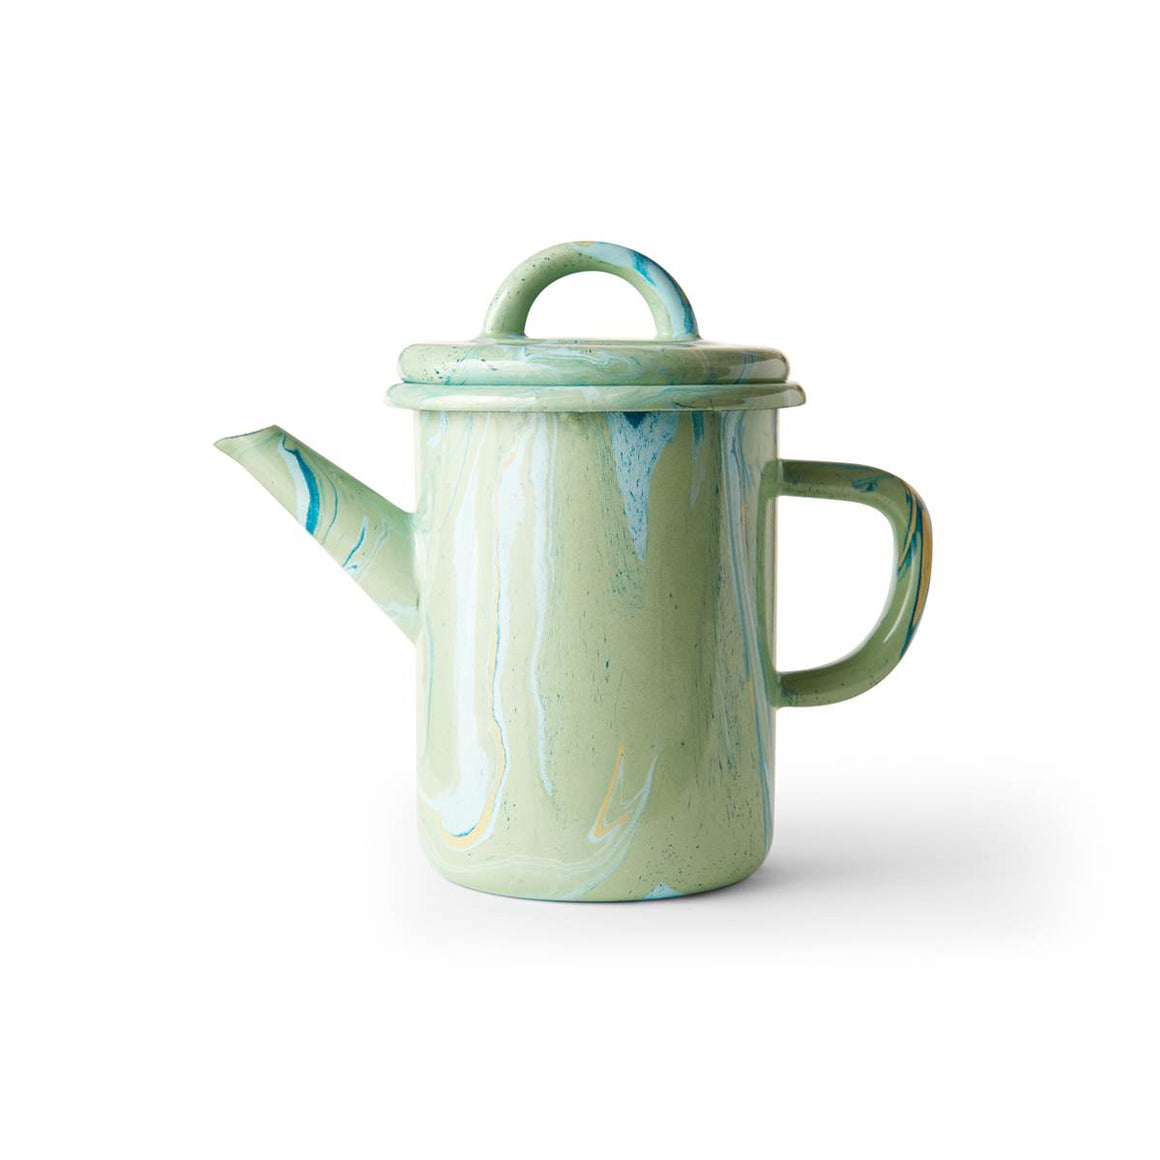 An enamel Teapot with beautiful marbled enamel in a range of contrasting tones of Turqouise, Green and light blue on a Mint Green Base.